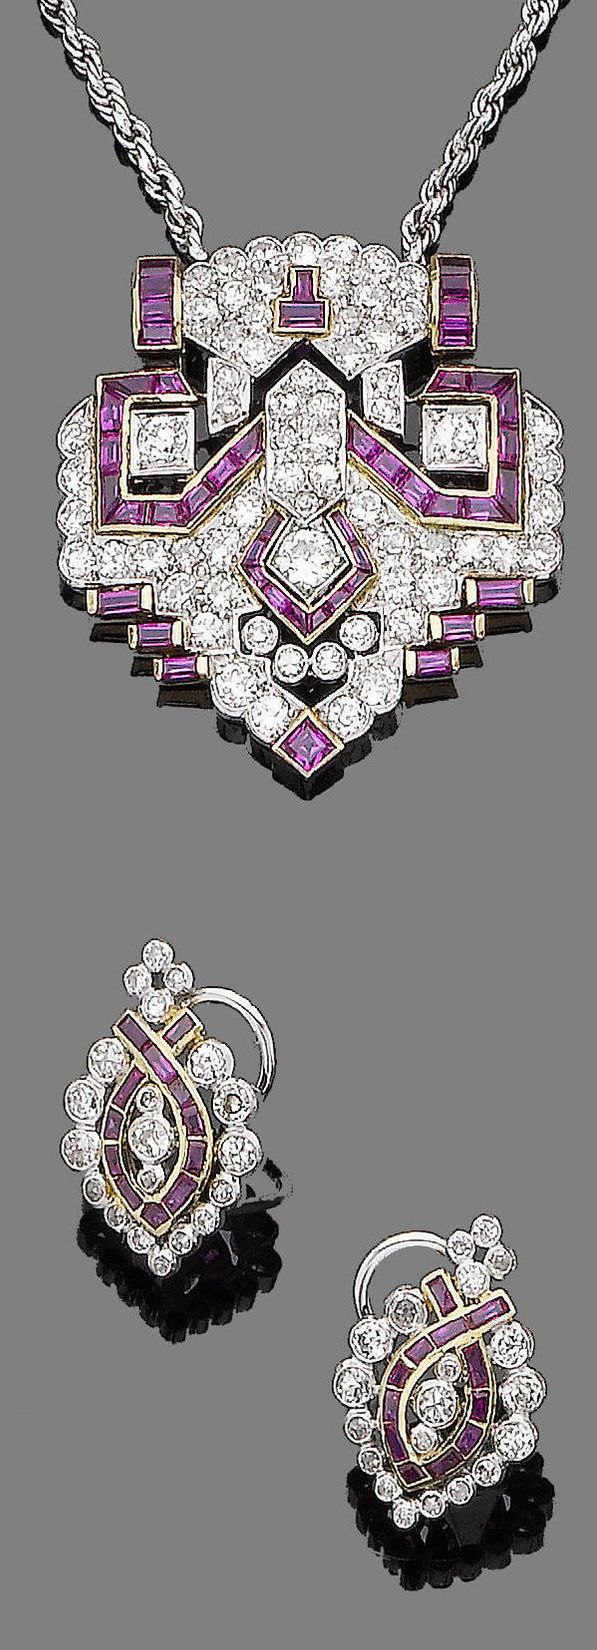 A ruby and diamond pendant necklace and earring suite. Of geometric design, set throughout with cushion-shaped, single and old brilliant-cut diamonds, highlighted by courses of calibré-cut rubies, to a rope-link chain, accompanied by a pair of earrings of similar design, diamonds approx. 4.60cts total, lengths: pendant 3.5cm, chain 41.0cm, earring 2.1cm.